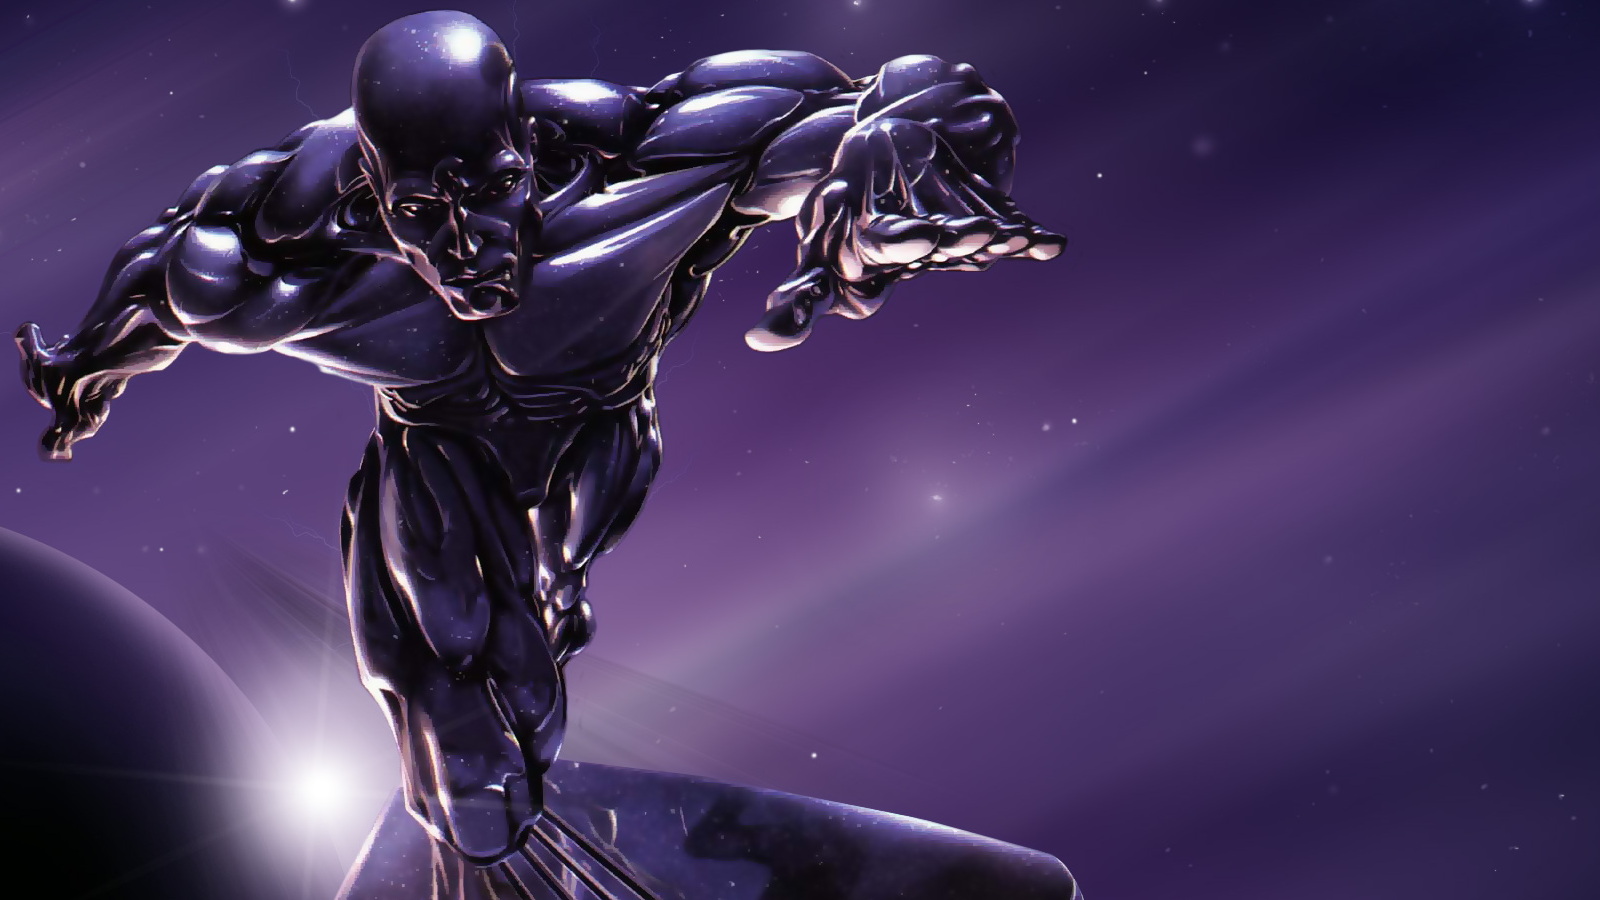 Silver Surfer Wallpaper 4713